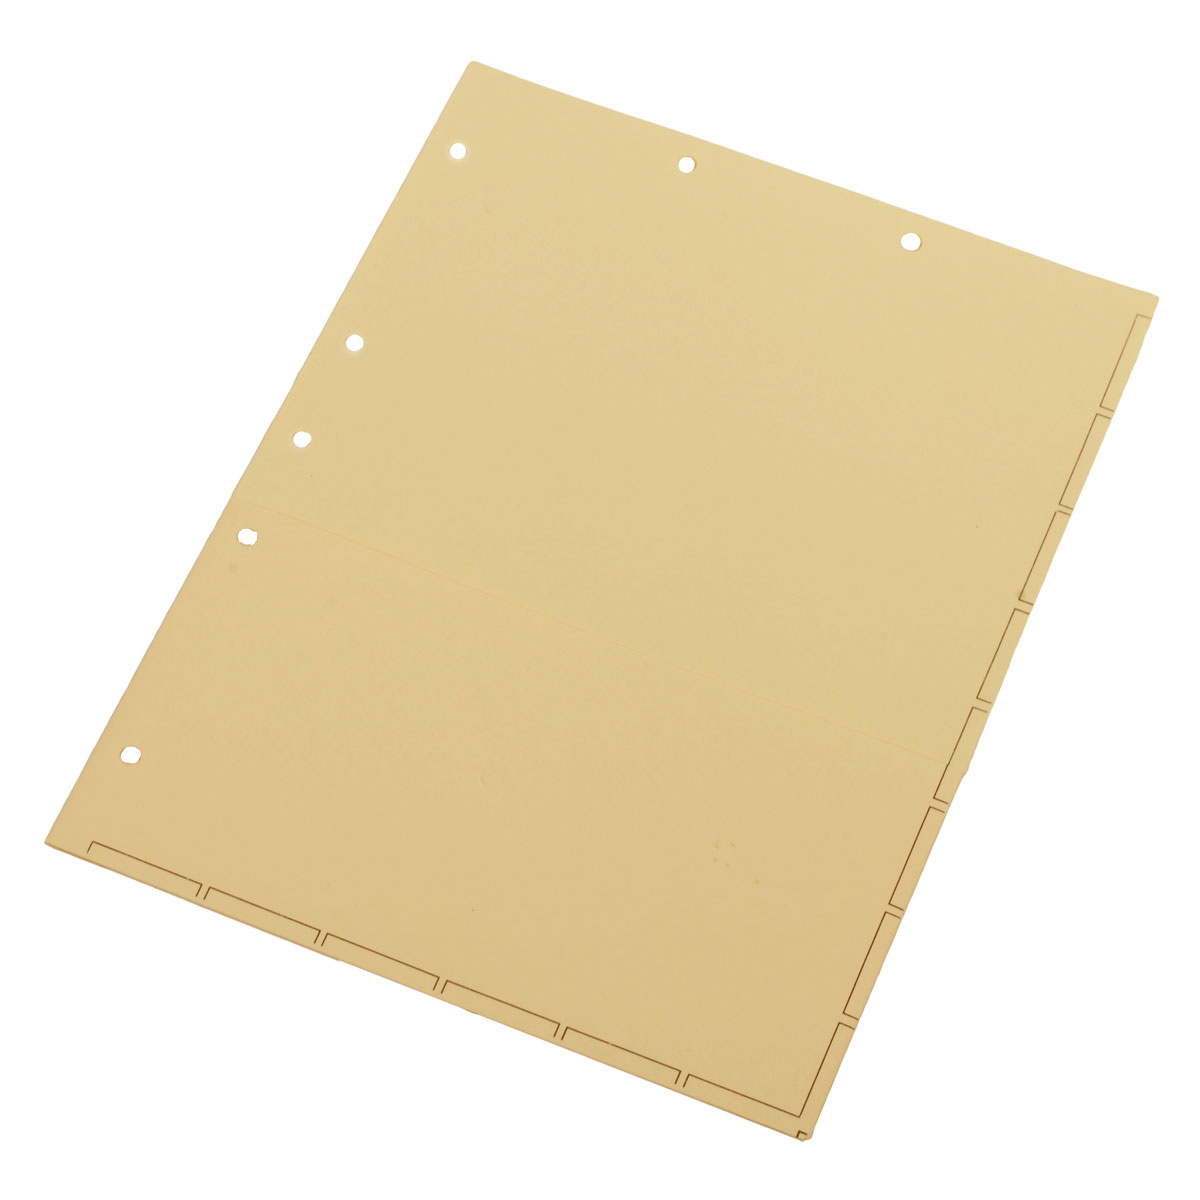 S-9149 - Chart Divider Sheets for Stick-On Tabs, Letter Size, Manila with 1/2 Pocket (Box of 50)